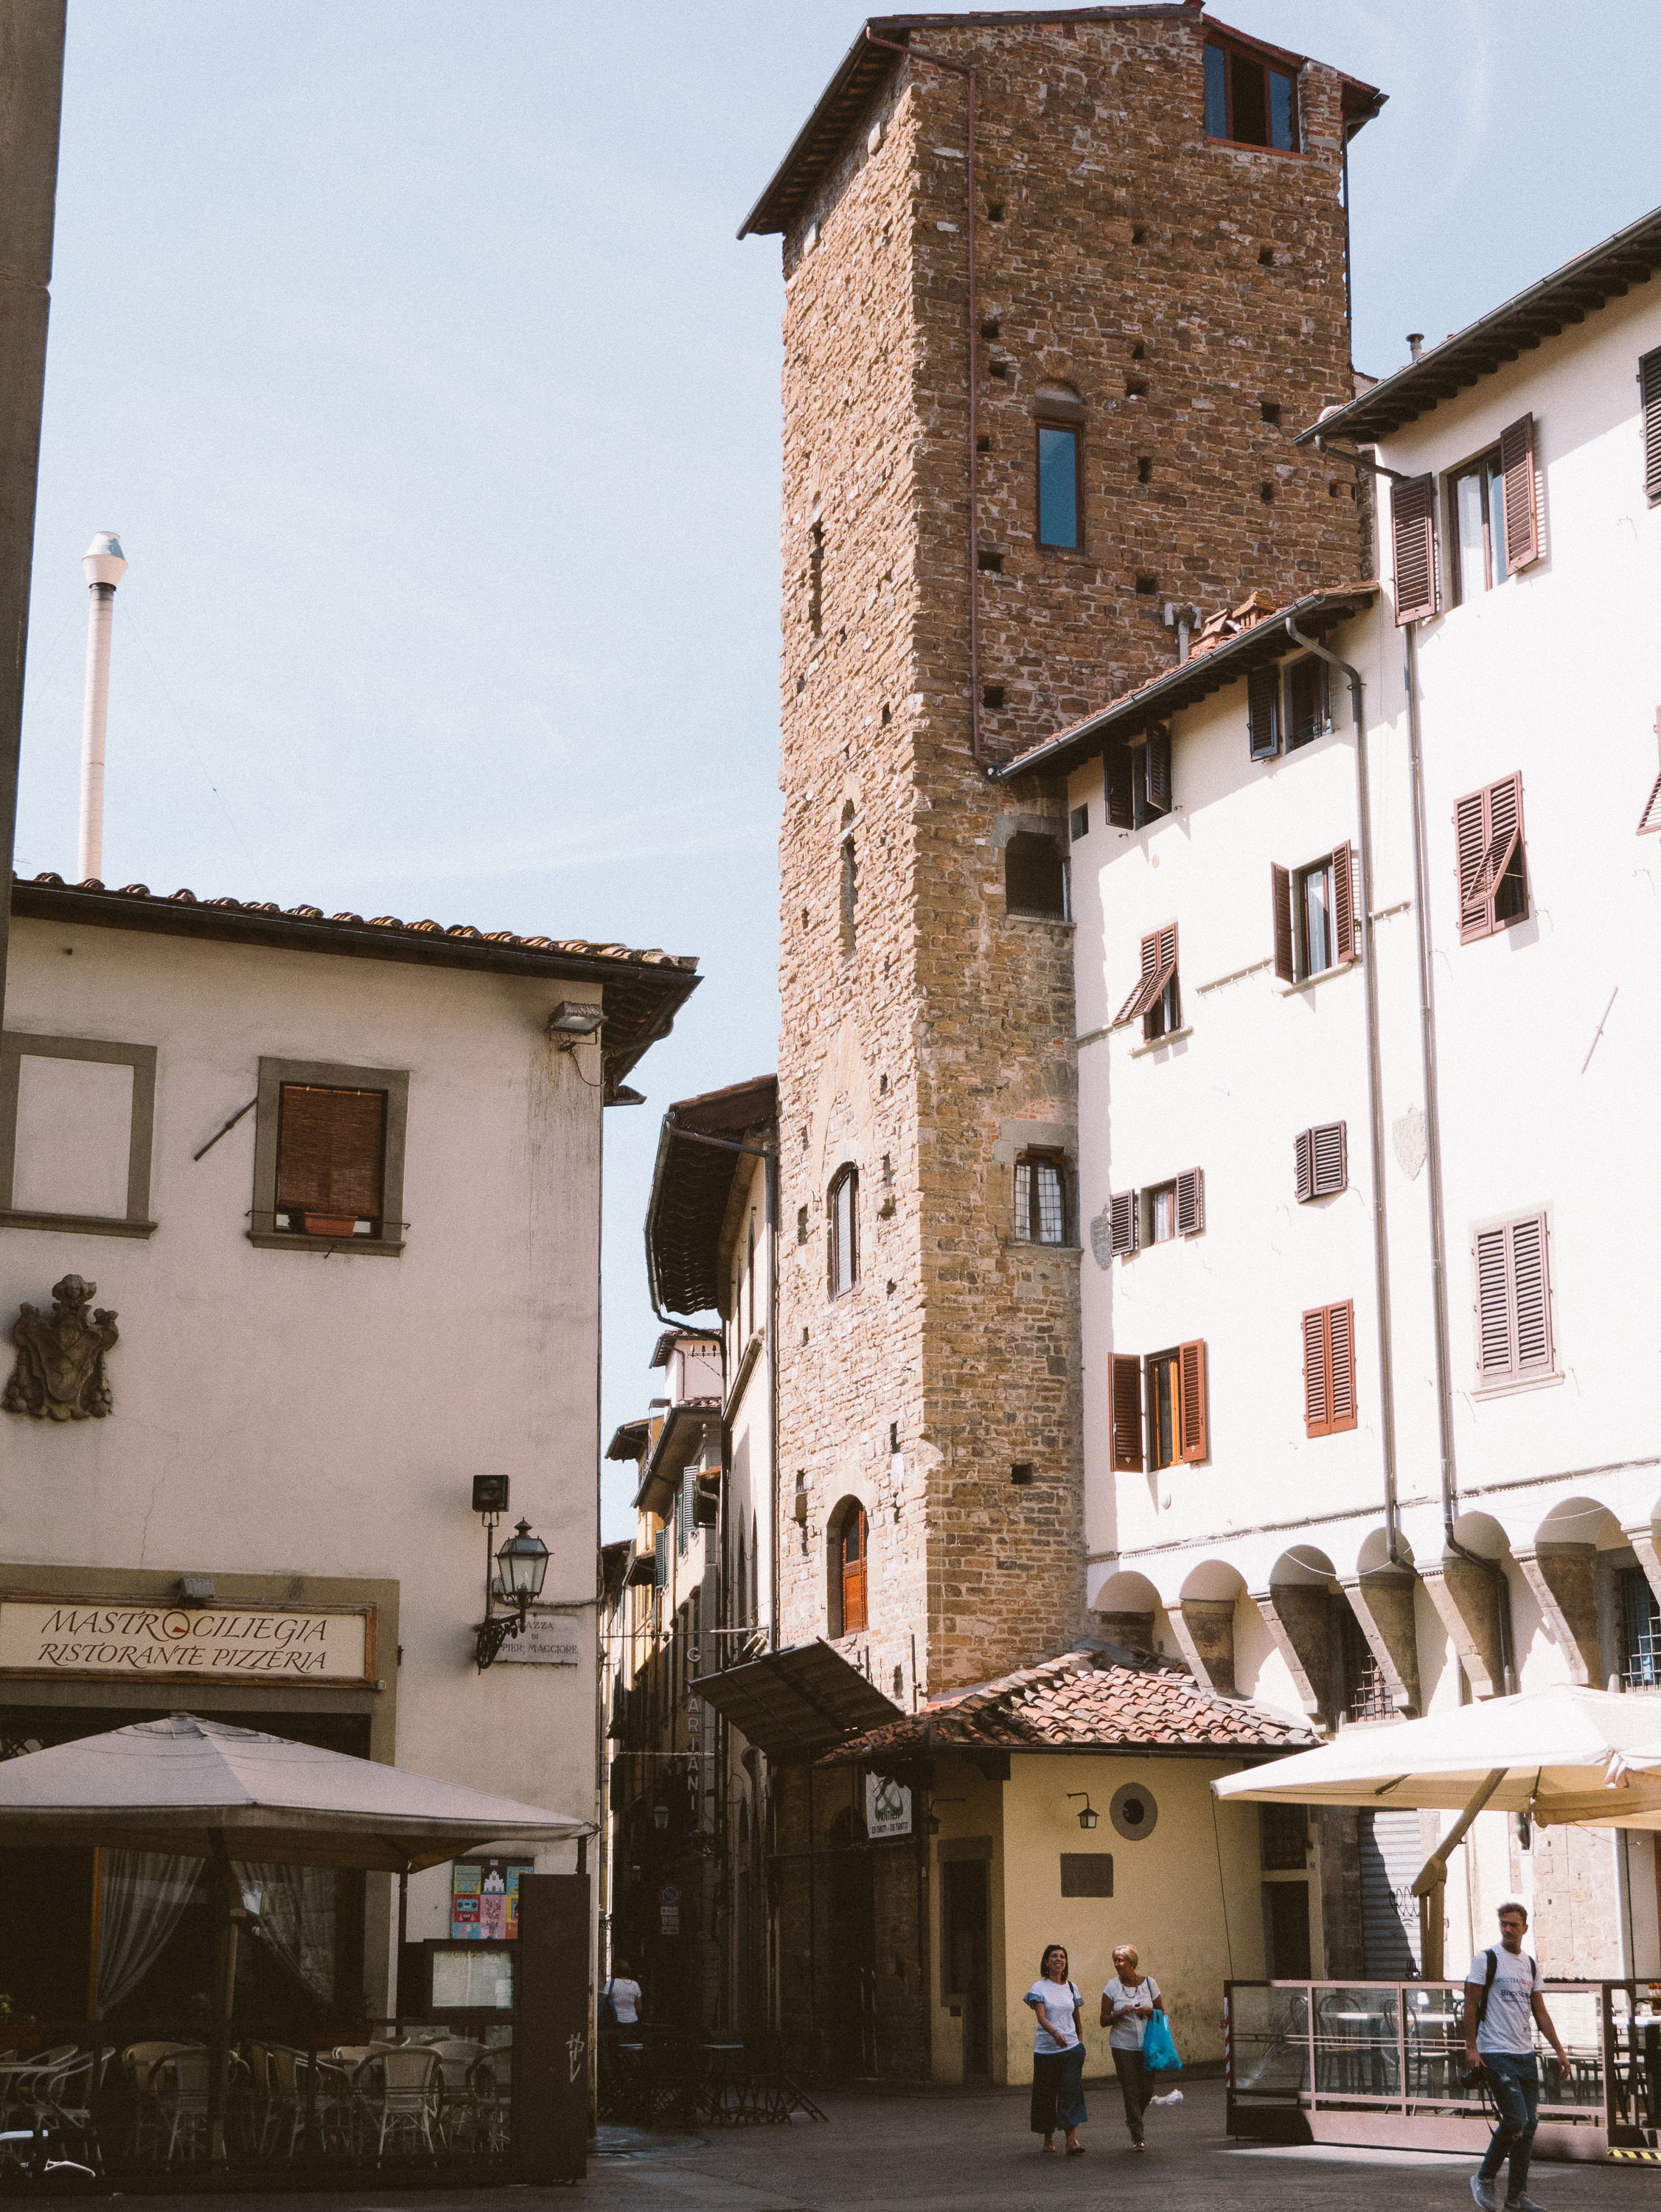 fat_creative_travel_blog_3_things_you_should_know_when_visiting_florence-50.jpg